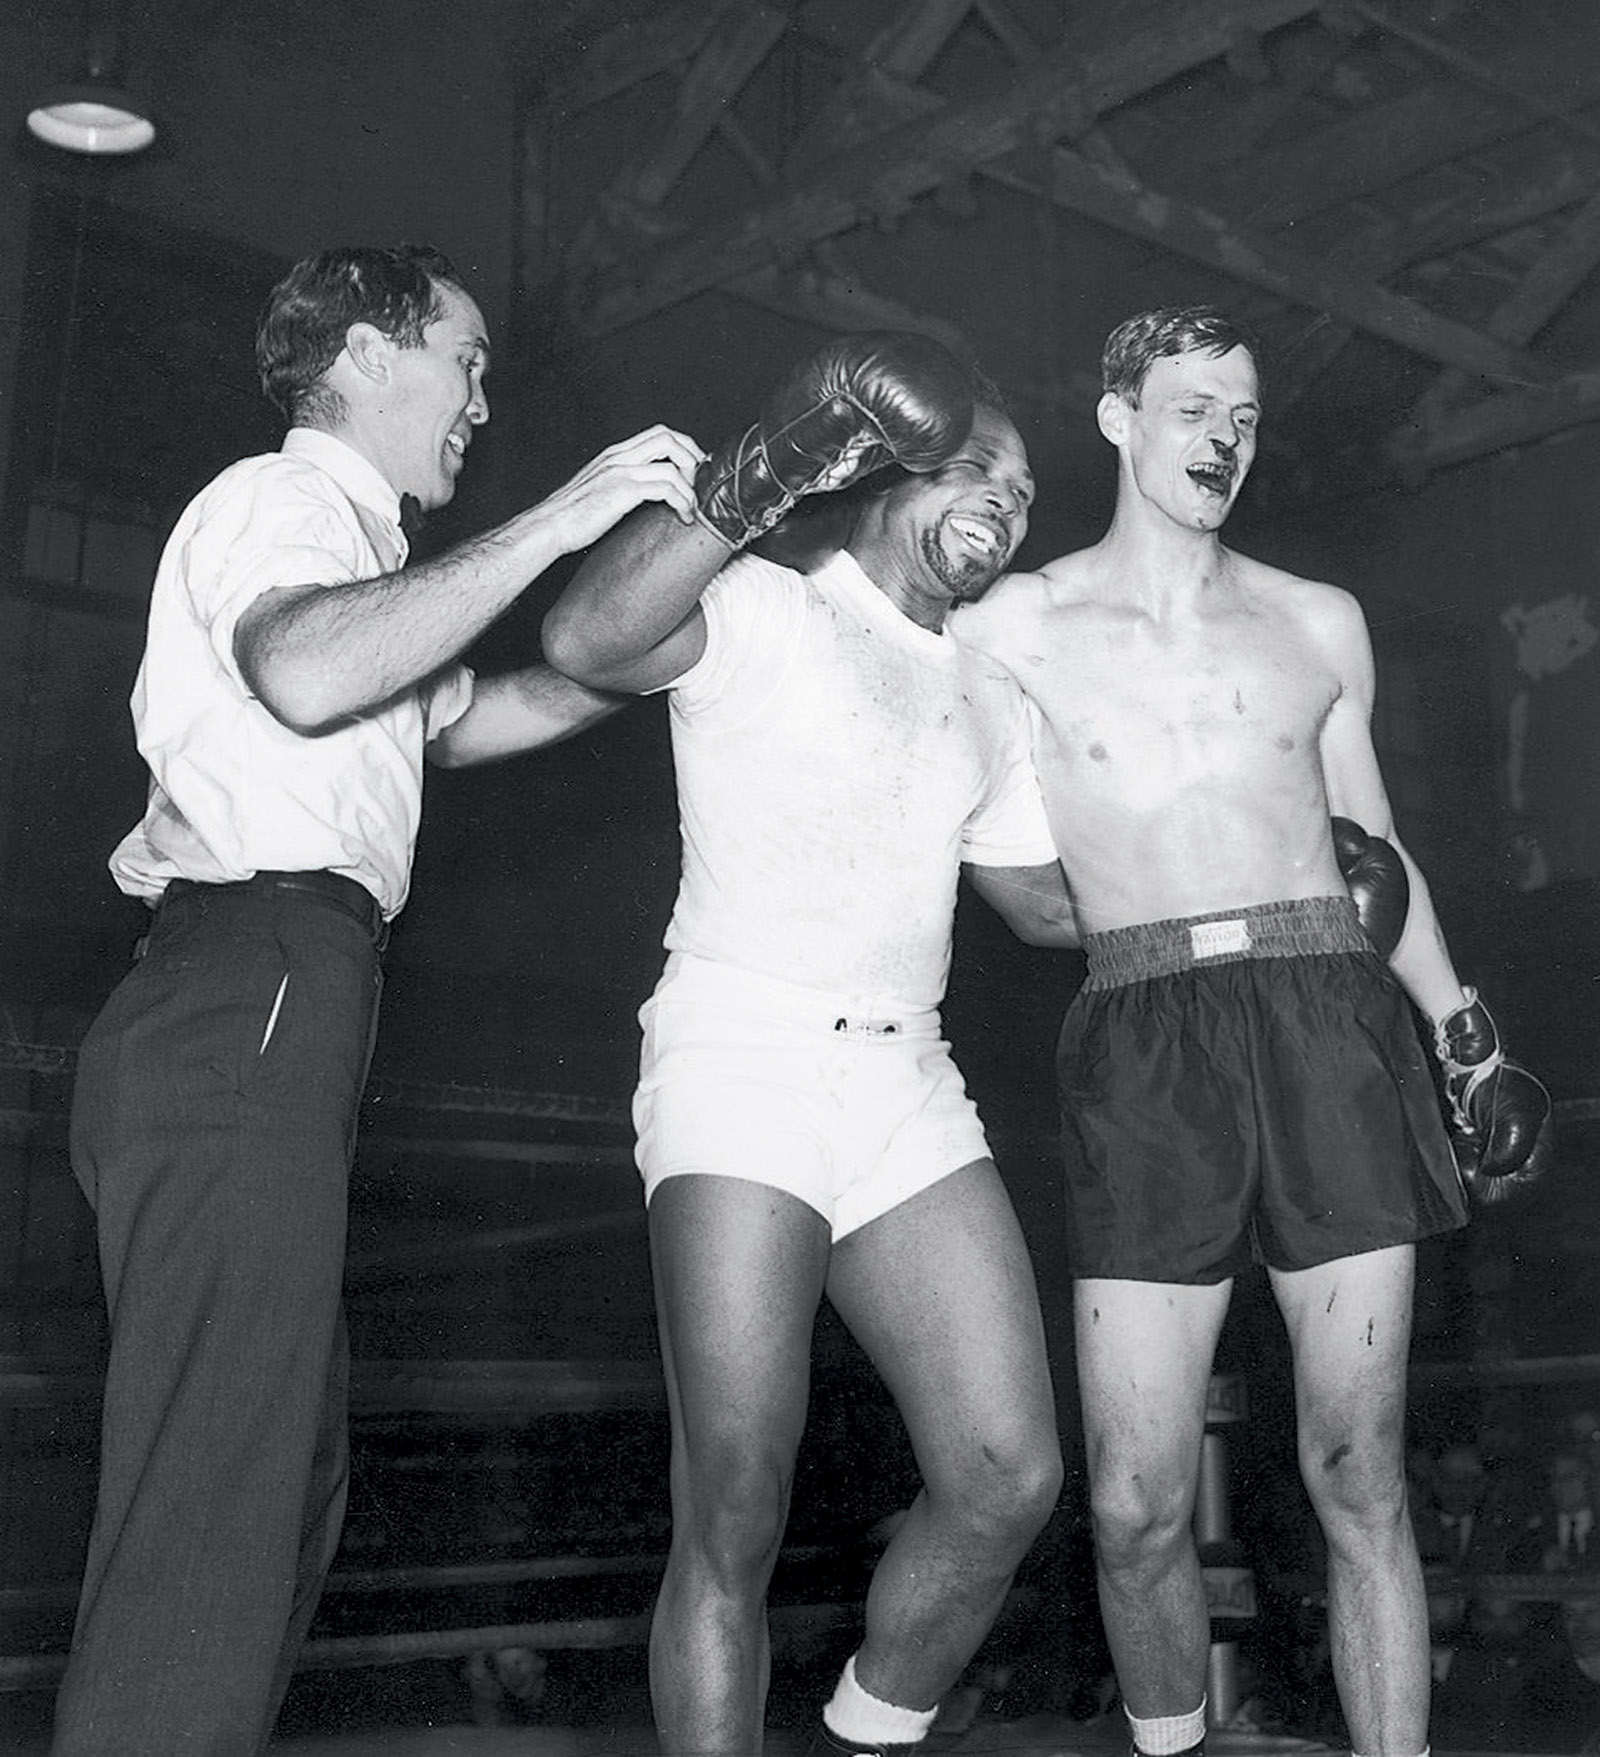 "George Plimpton, right, after a boxing match with Archie Moore at Stillman's Gym, New York City, 1959; Ezra Bowen, the Sports Illustrated editor who acted as referee, is at left. 'Quite visible are the effects Archie Moore left on the author's nose,' Plimpton writes in Shadow Box, 'what would have been described in the jaunty style of the mid-nineteenth century as follows: ""Archie dropped a hut'un on George's sneezer which shook his ivories and turned the tap on.""'"